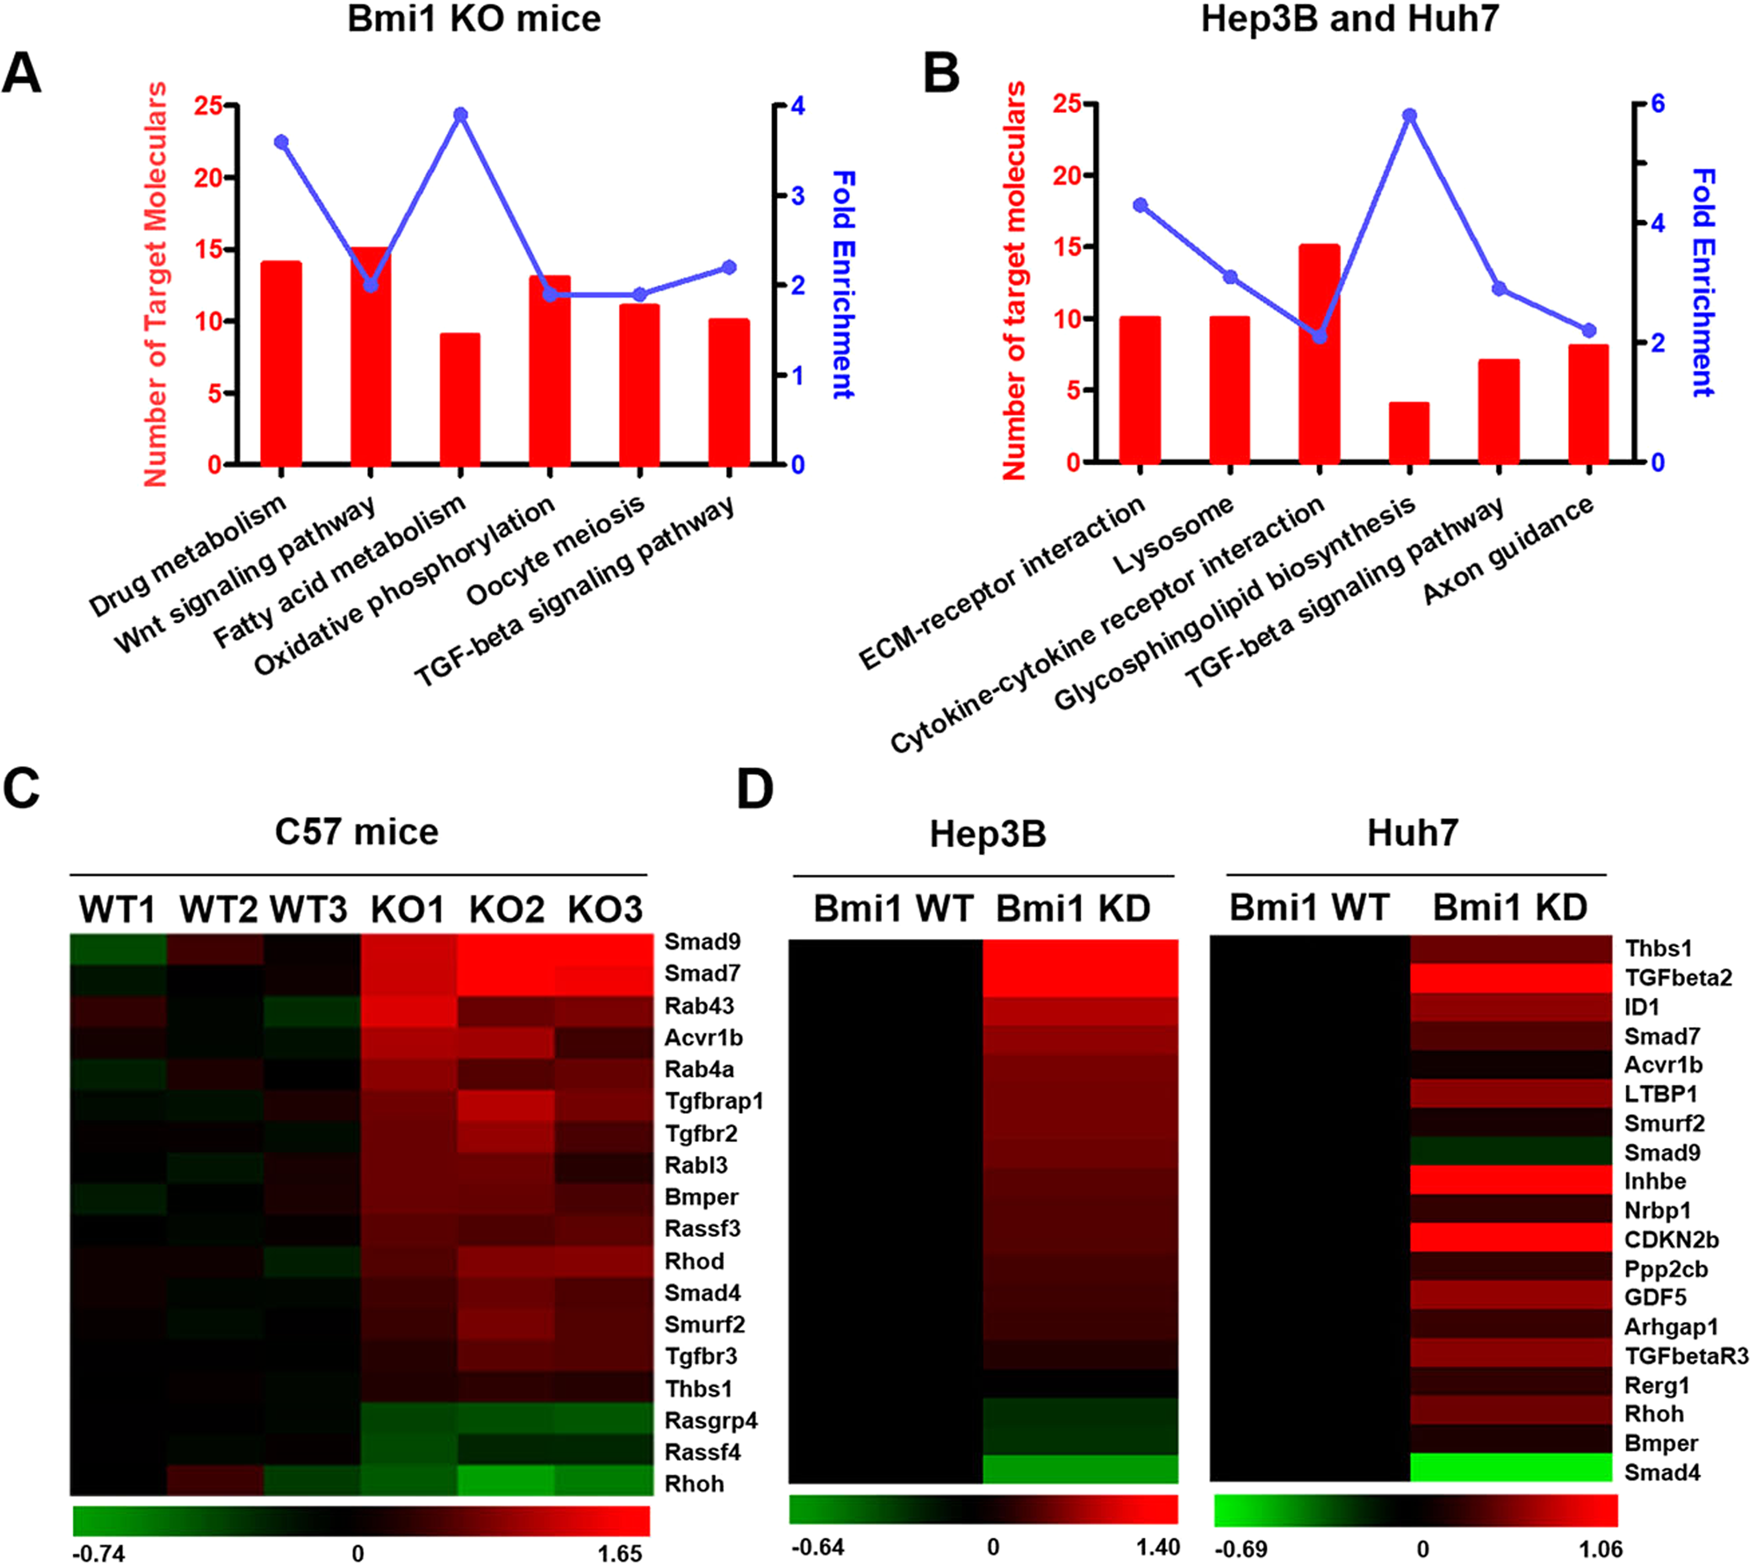 Bmi1 drives hepatocarcinogenesis by repressing the TGFβ2/SMAD sig